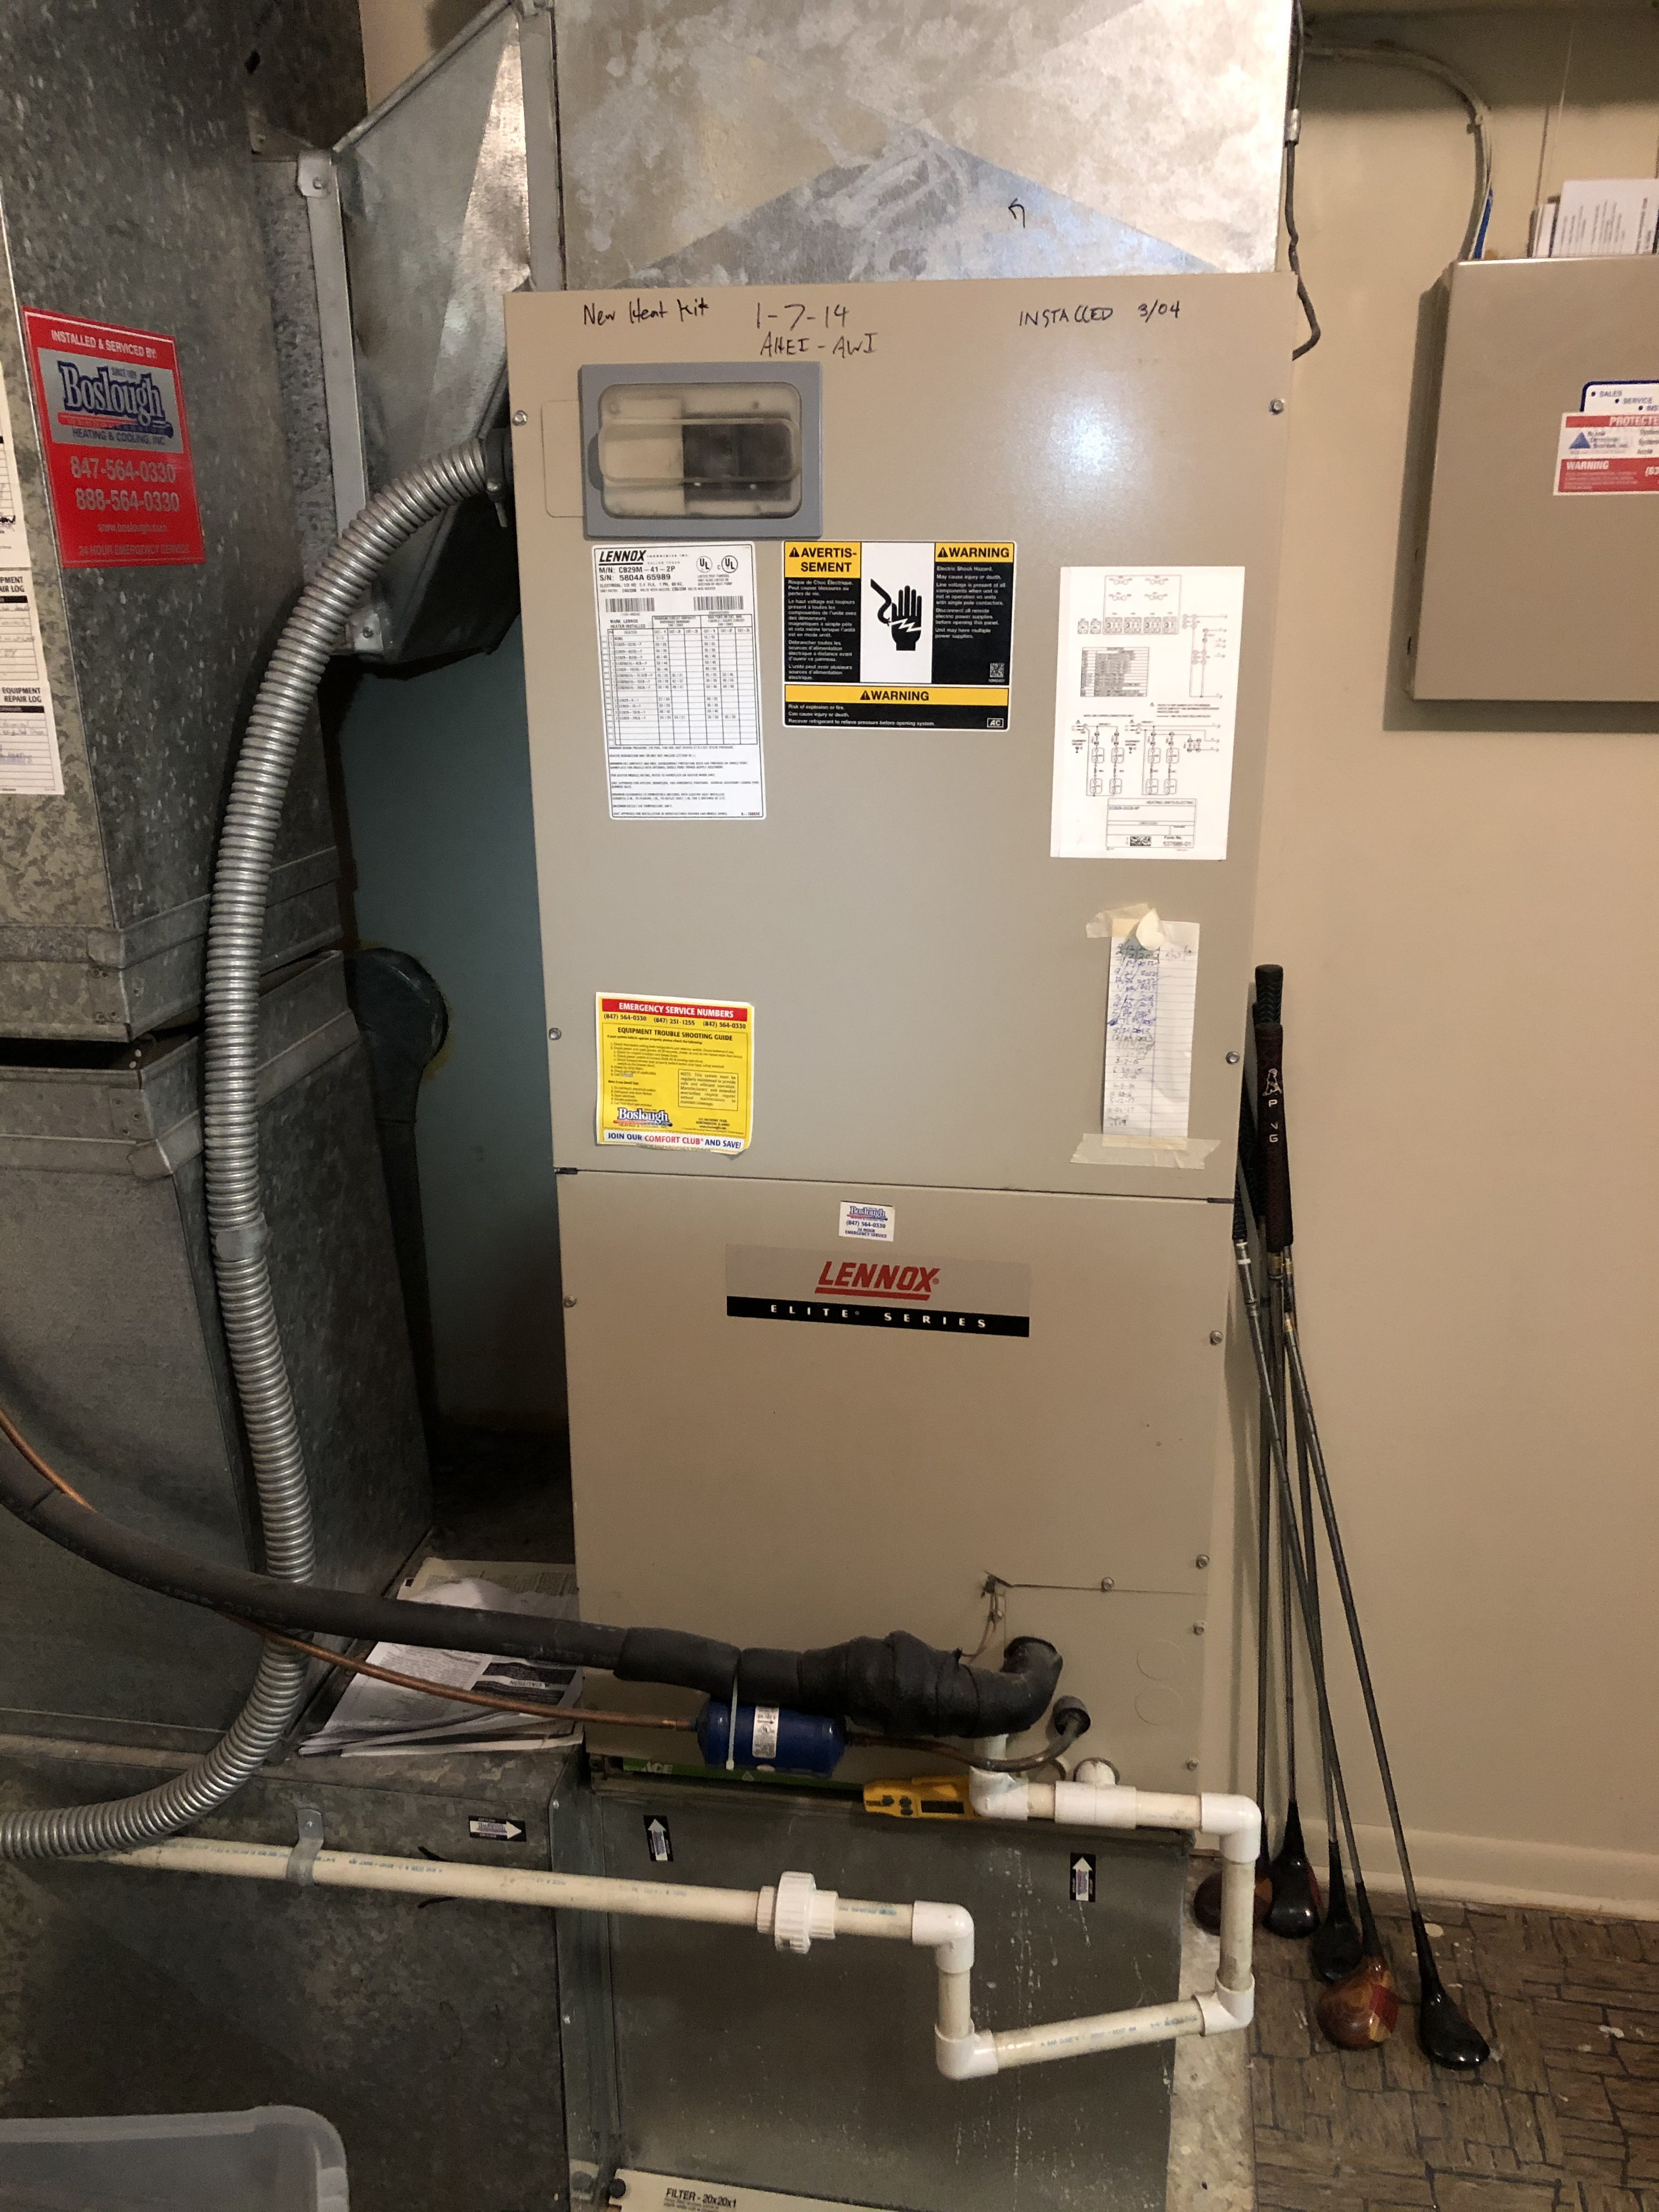 Do you have to clean electric furnaces? Yes you do. This is an appliance that uses the most energy in a home, more than the air conditioner or oven. There are motors that need oiling, safeties that need testing and a sequence of operation that must be followed so no problems occur when they need it most.